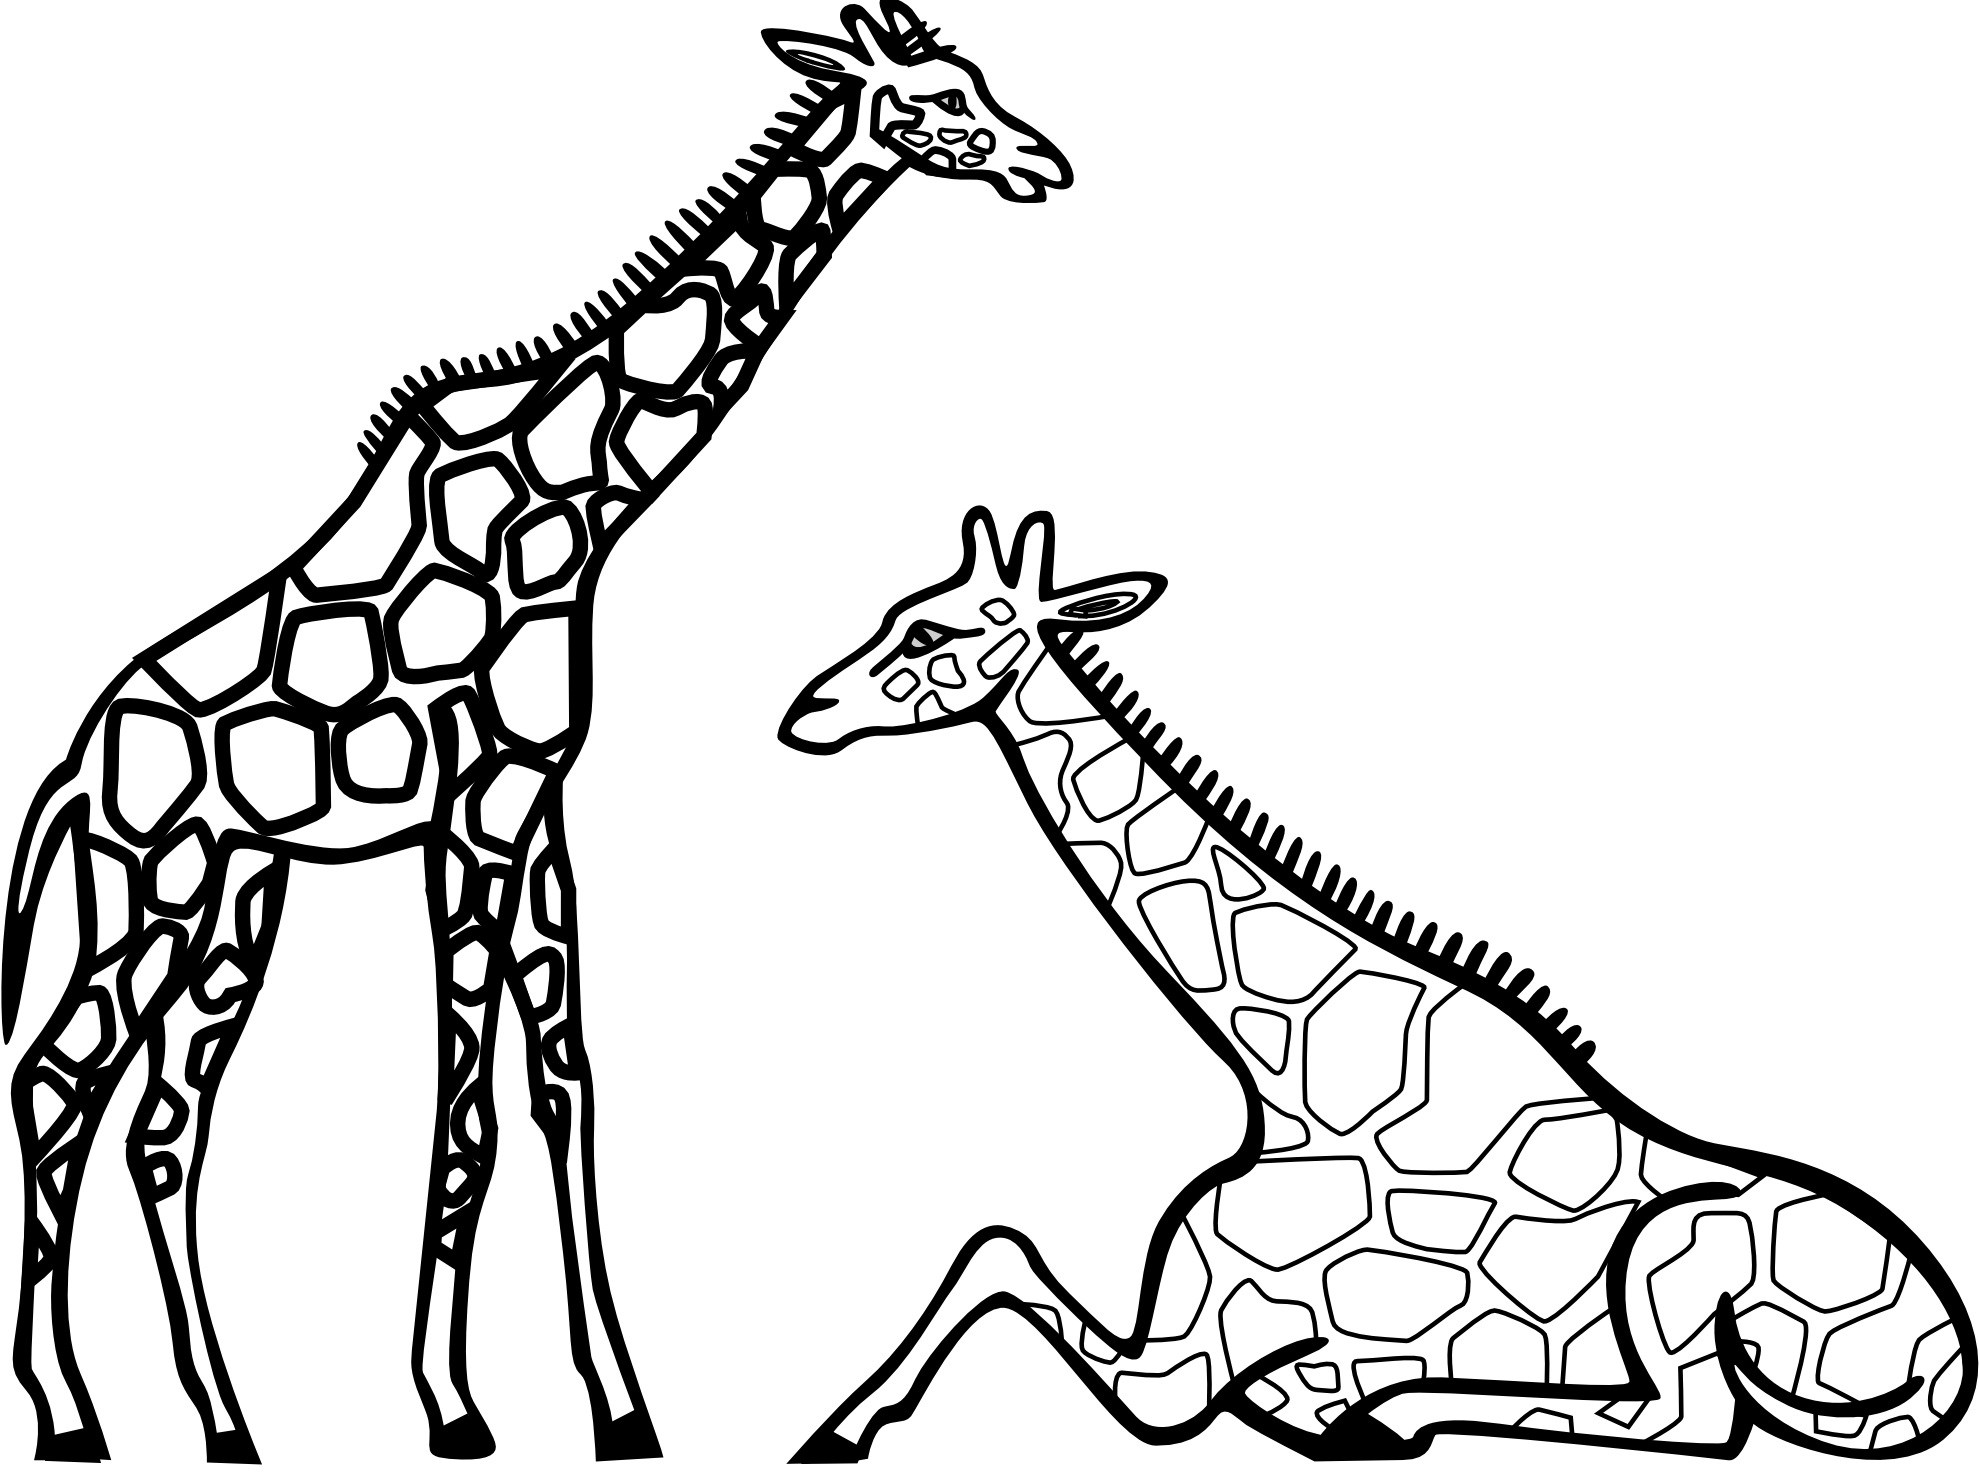 Free printables giraffe in plane clipart picture freeuse library 2. printable 02 animals gt. top 20 free printable giraffe coloring ... picture freeuse library